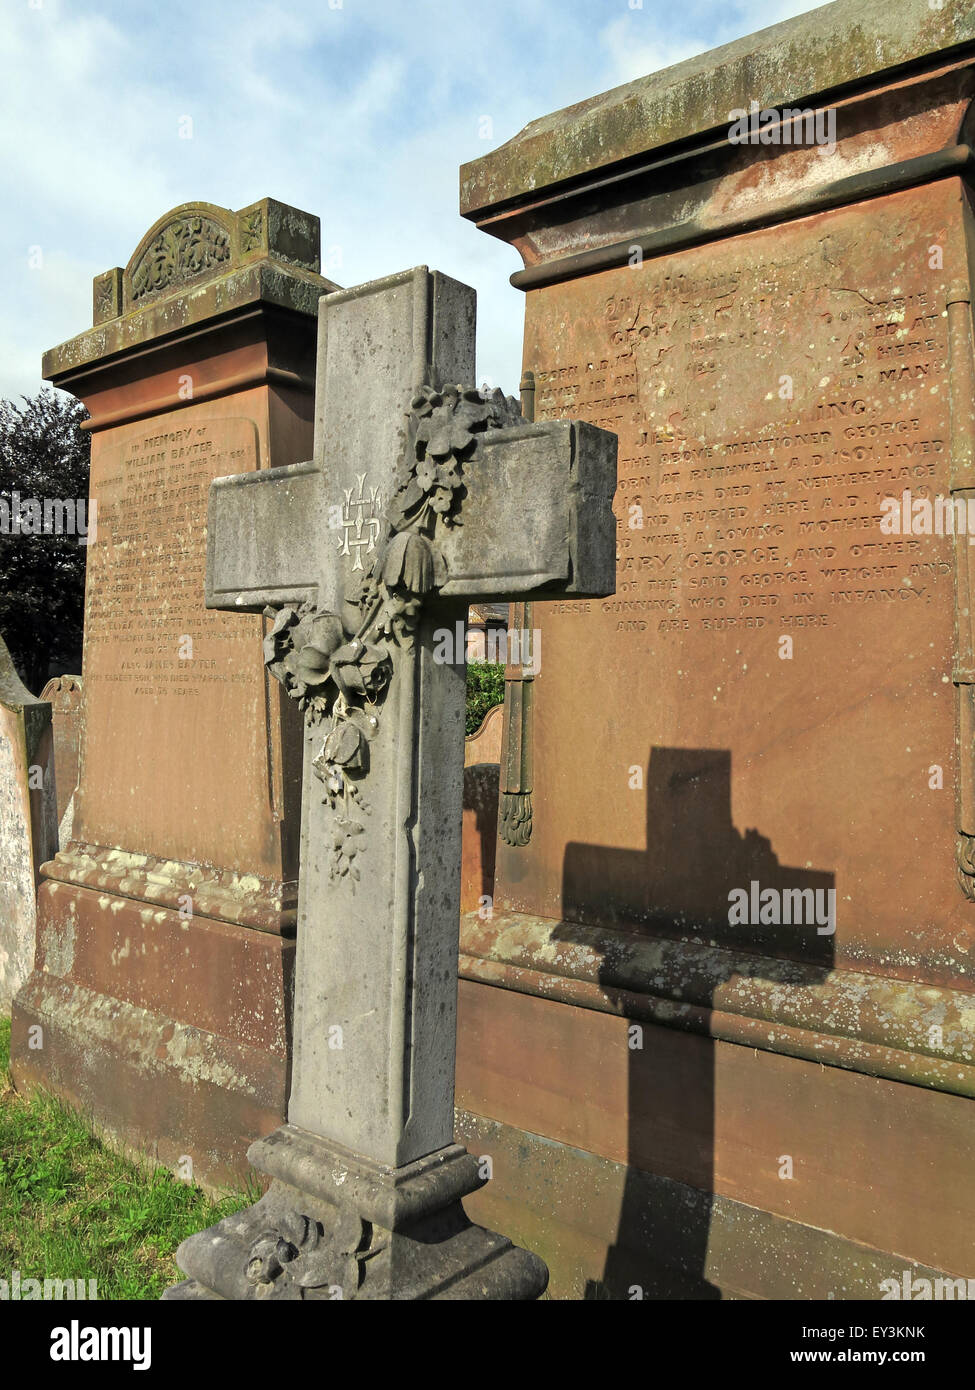 Annan,Old,Parish,Church,of,Scotland,Scottish,Churches,religion,Anglican,Anglicans,grave,graves,cross,shadow,history,historic,GoTonySmith,AD,573,–,St,Mungo,passes,through,Annandale,AD,686,–,Abbot,Adamnan,of,Iona,at,Annan,Waterfoot,AD,1148,–,St,Malachi,Bishop of Clairvaux,visits,Bruce,at,Annan.,AD,1171,–,Church,of,Annan,built,by,Robert,Bruce,near,the,site,of,the,Town,Hall.,AD,1187,–,William,Dean,of,the,Valley,of,Annan,witnesses,the,charter.,AD,1196,–,Incumbent,of,Annan,Ministers,in,plague.,AD,1223,–,Church,transferred,to,See,of,Glasgow,from,Gwsborough.,AD,1265,–,Stipend,increased,by,forty,shillings,Robert,the,rector,collects,a,hundred,shillings.,AD,1213,–,Rector,established,in,Annan,by,the,Dean,of,Glasgow,succeeding,Robert,the,Rector.,AD,1327,–,Robert,Rector,of,Annan.,AD,1335,–,Walter,Rector of Annan,translated,to,Dronnok,(Dornock),AD,1474,–,Gilbert,Maxwell,Rector,of,Annan.,AD,1487,–,William,Turnbull,Rector of An,Buy Pictures of,Buy Images Of